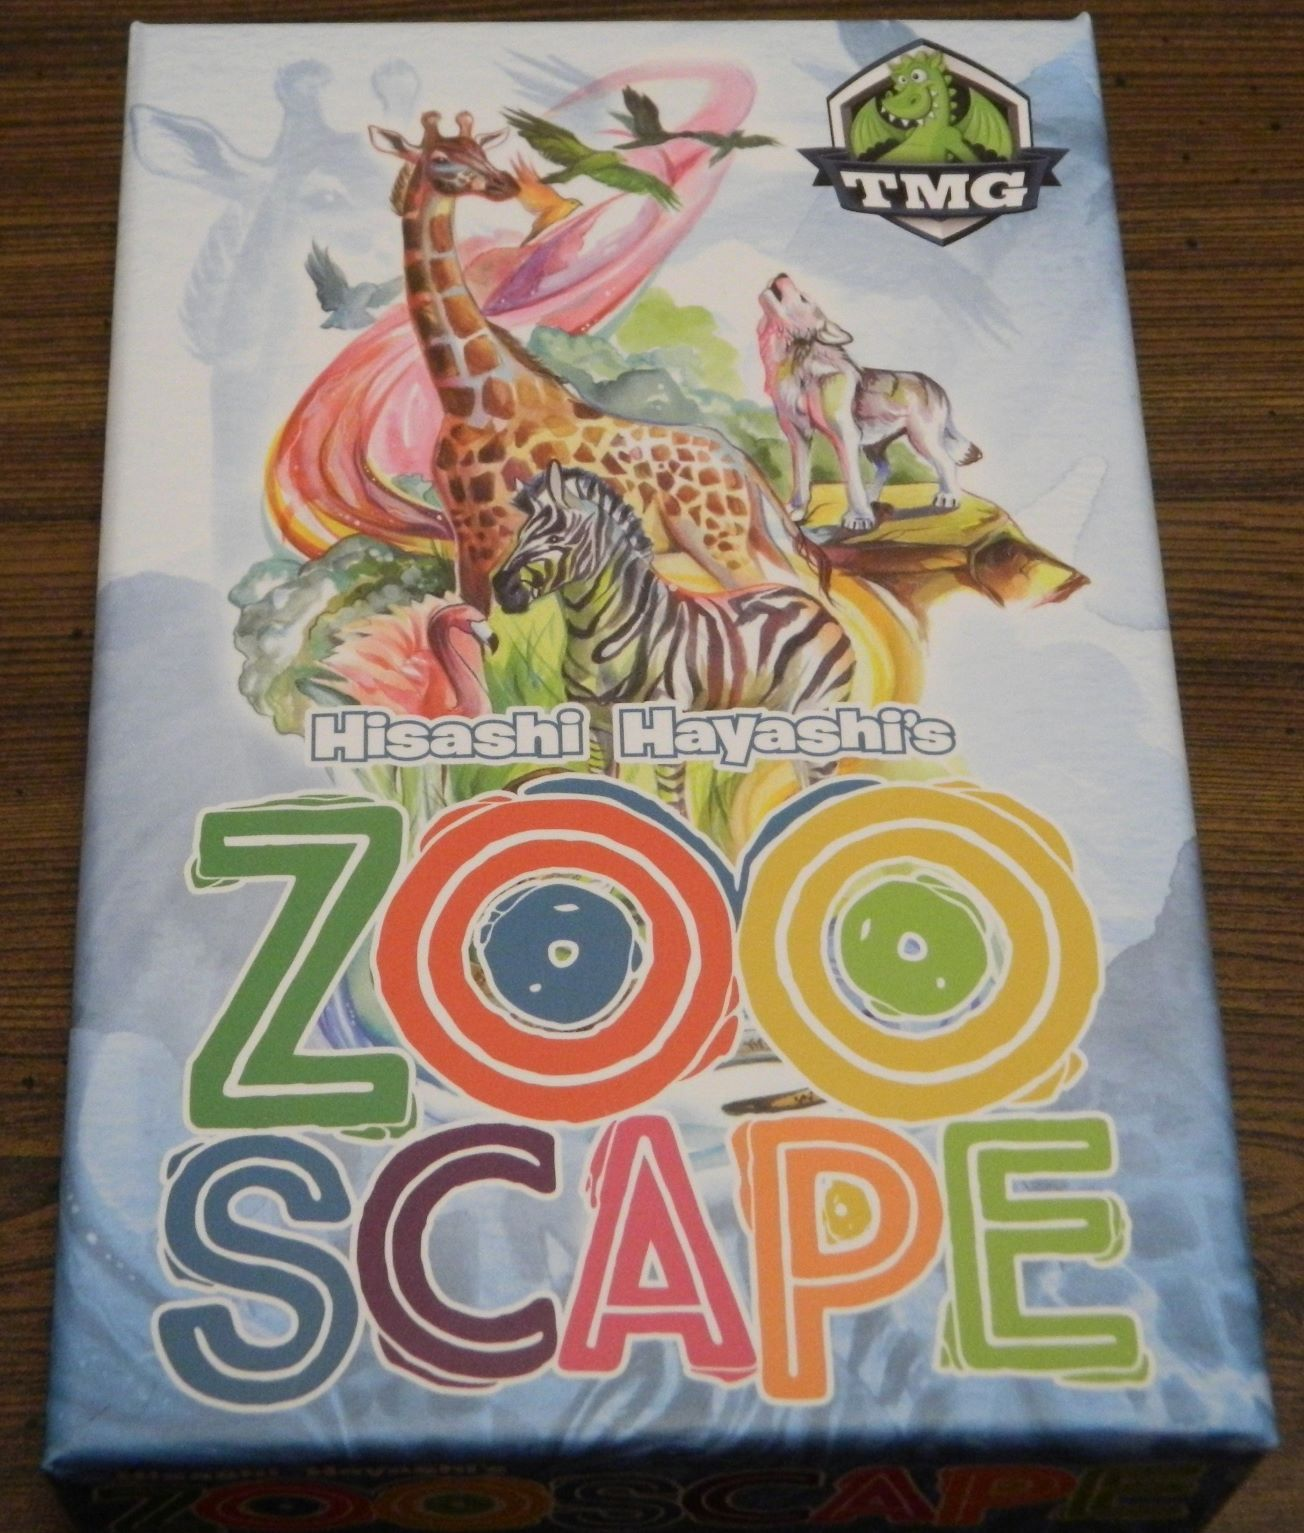 Box for Zooscape